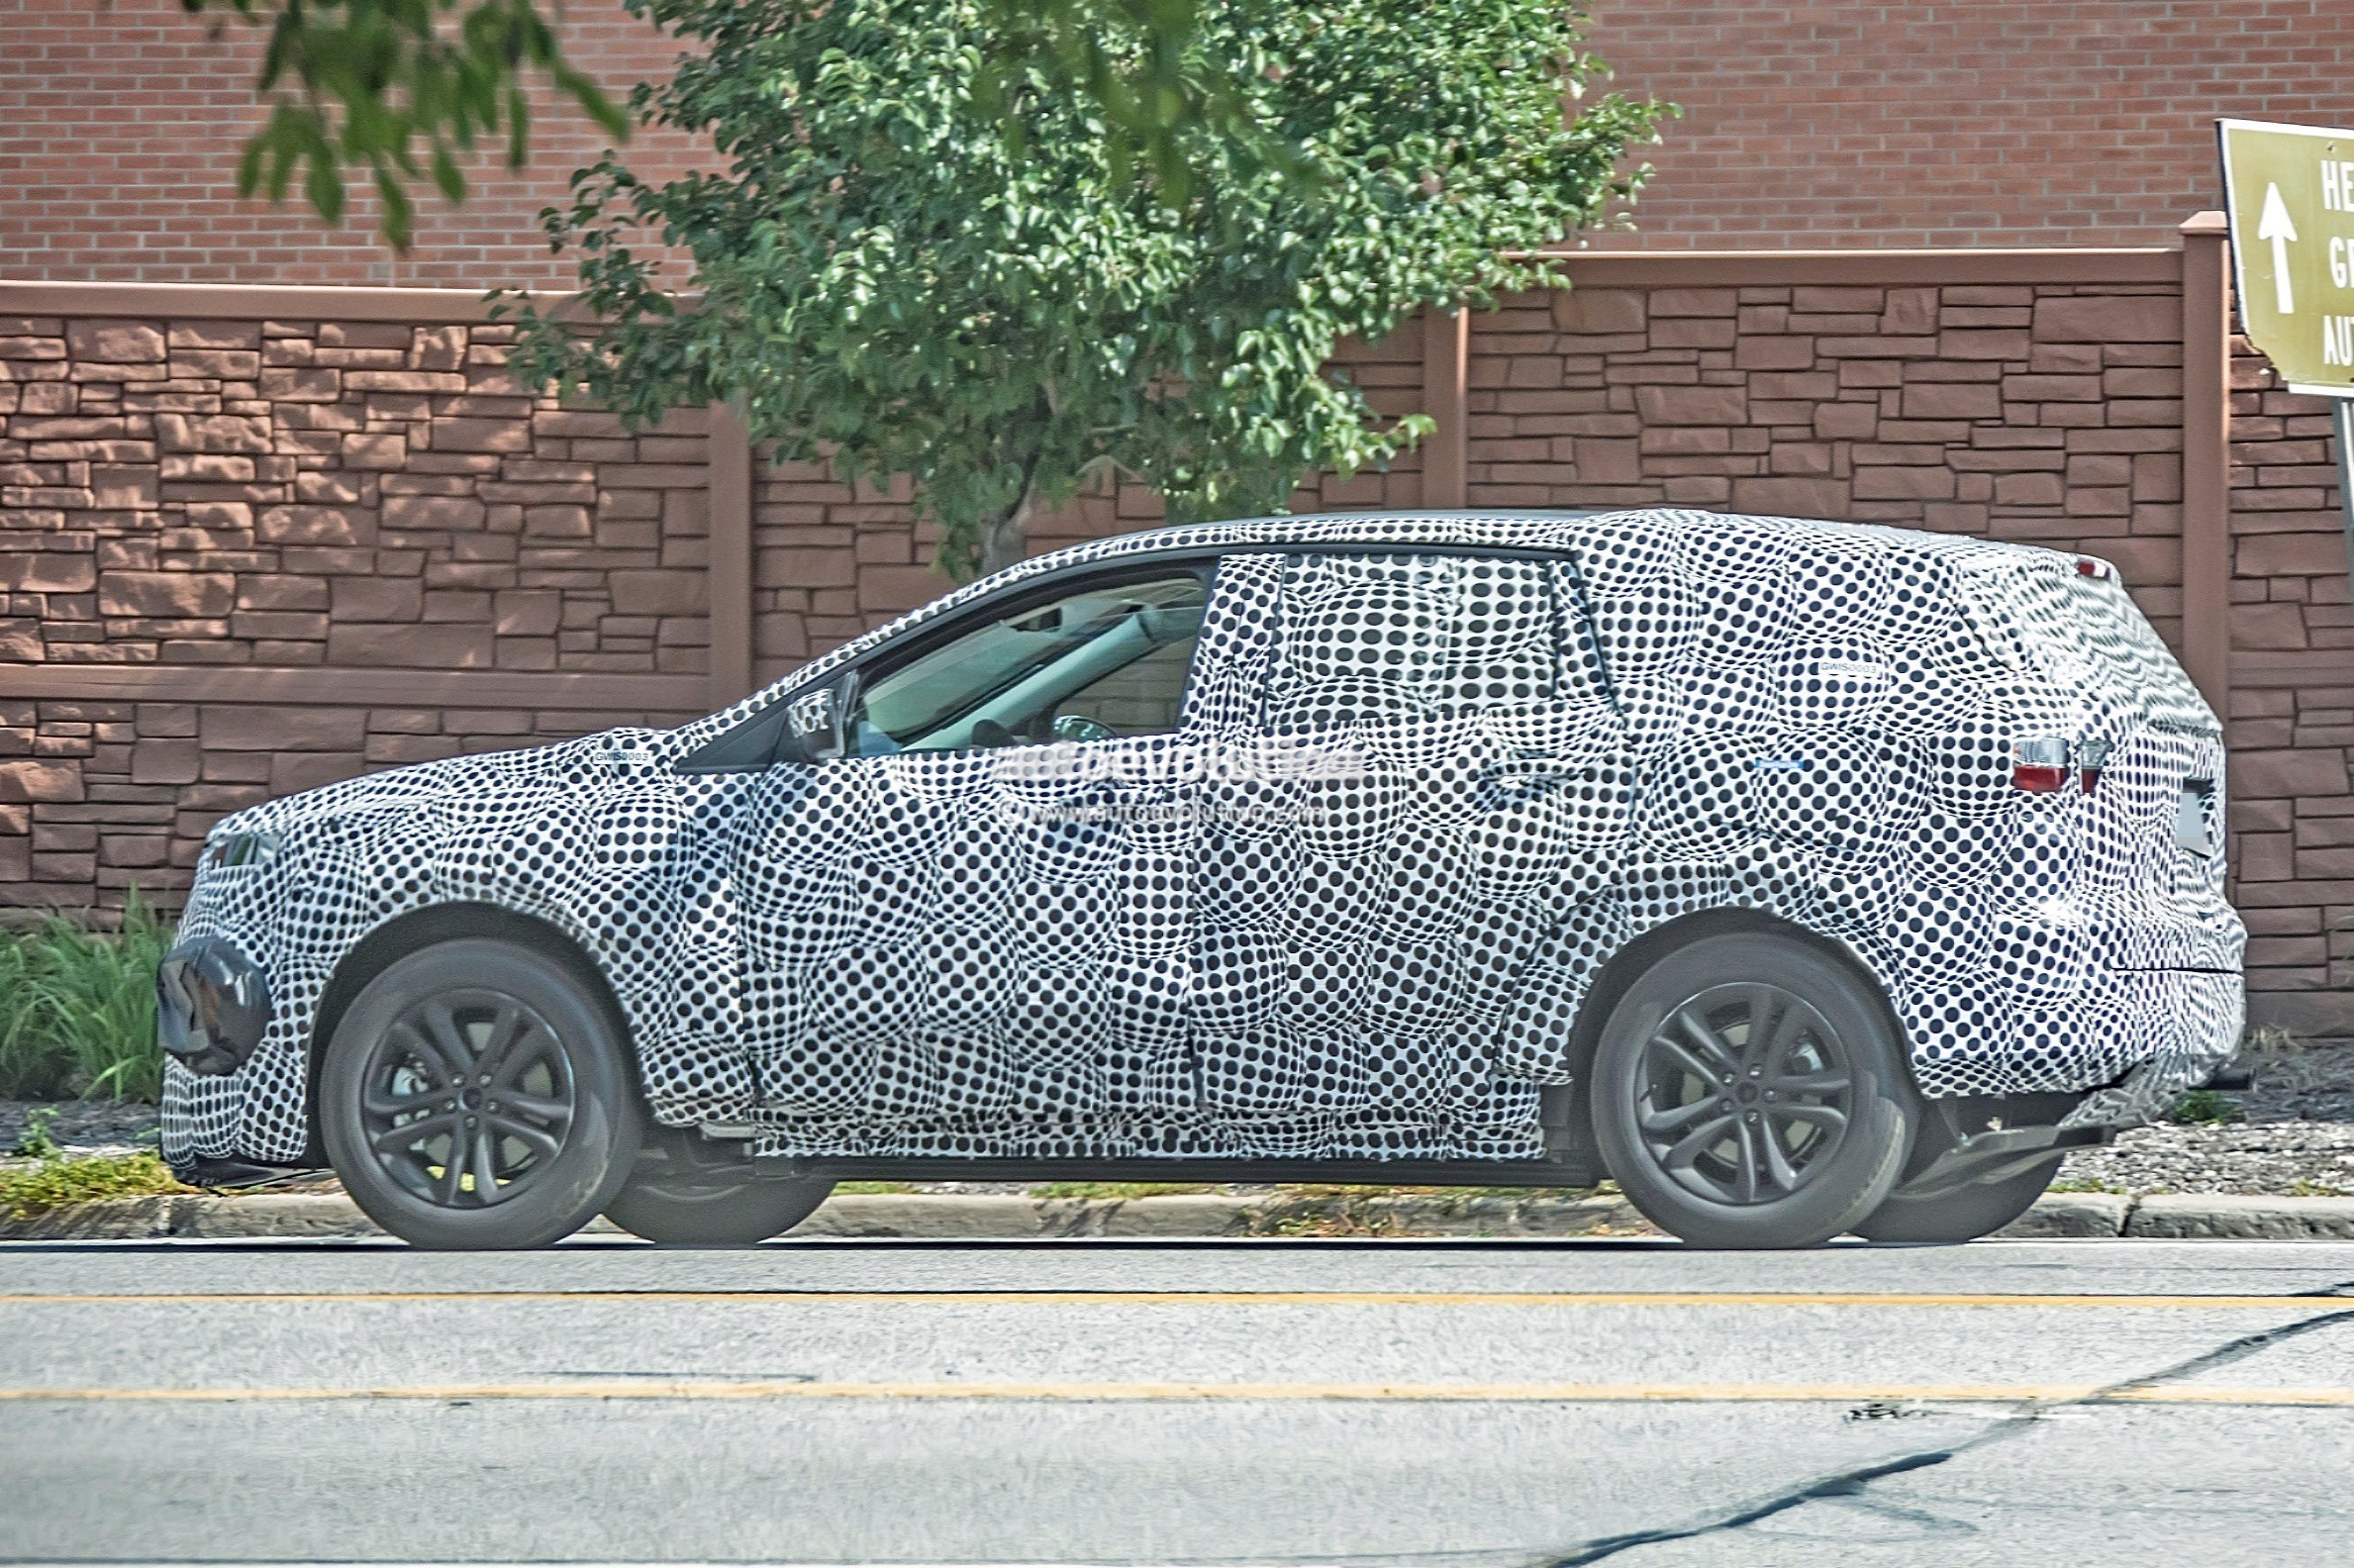 Ford Mach E Trademark Could Be Used For Electric Crossover ...